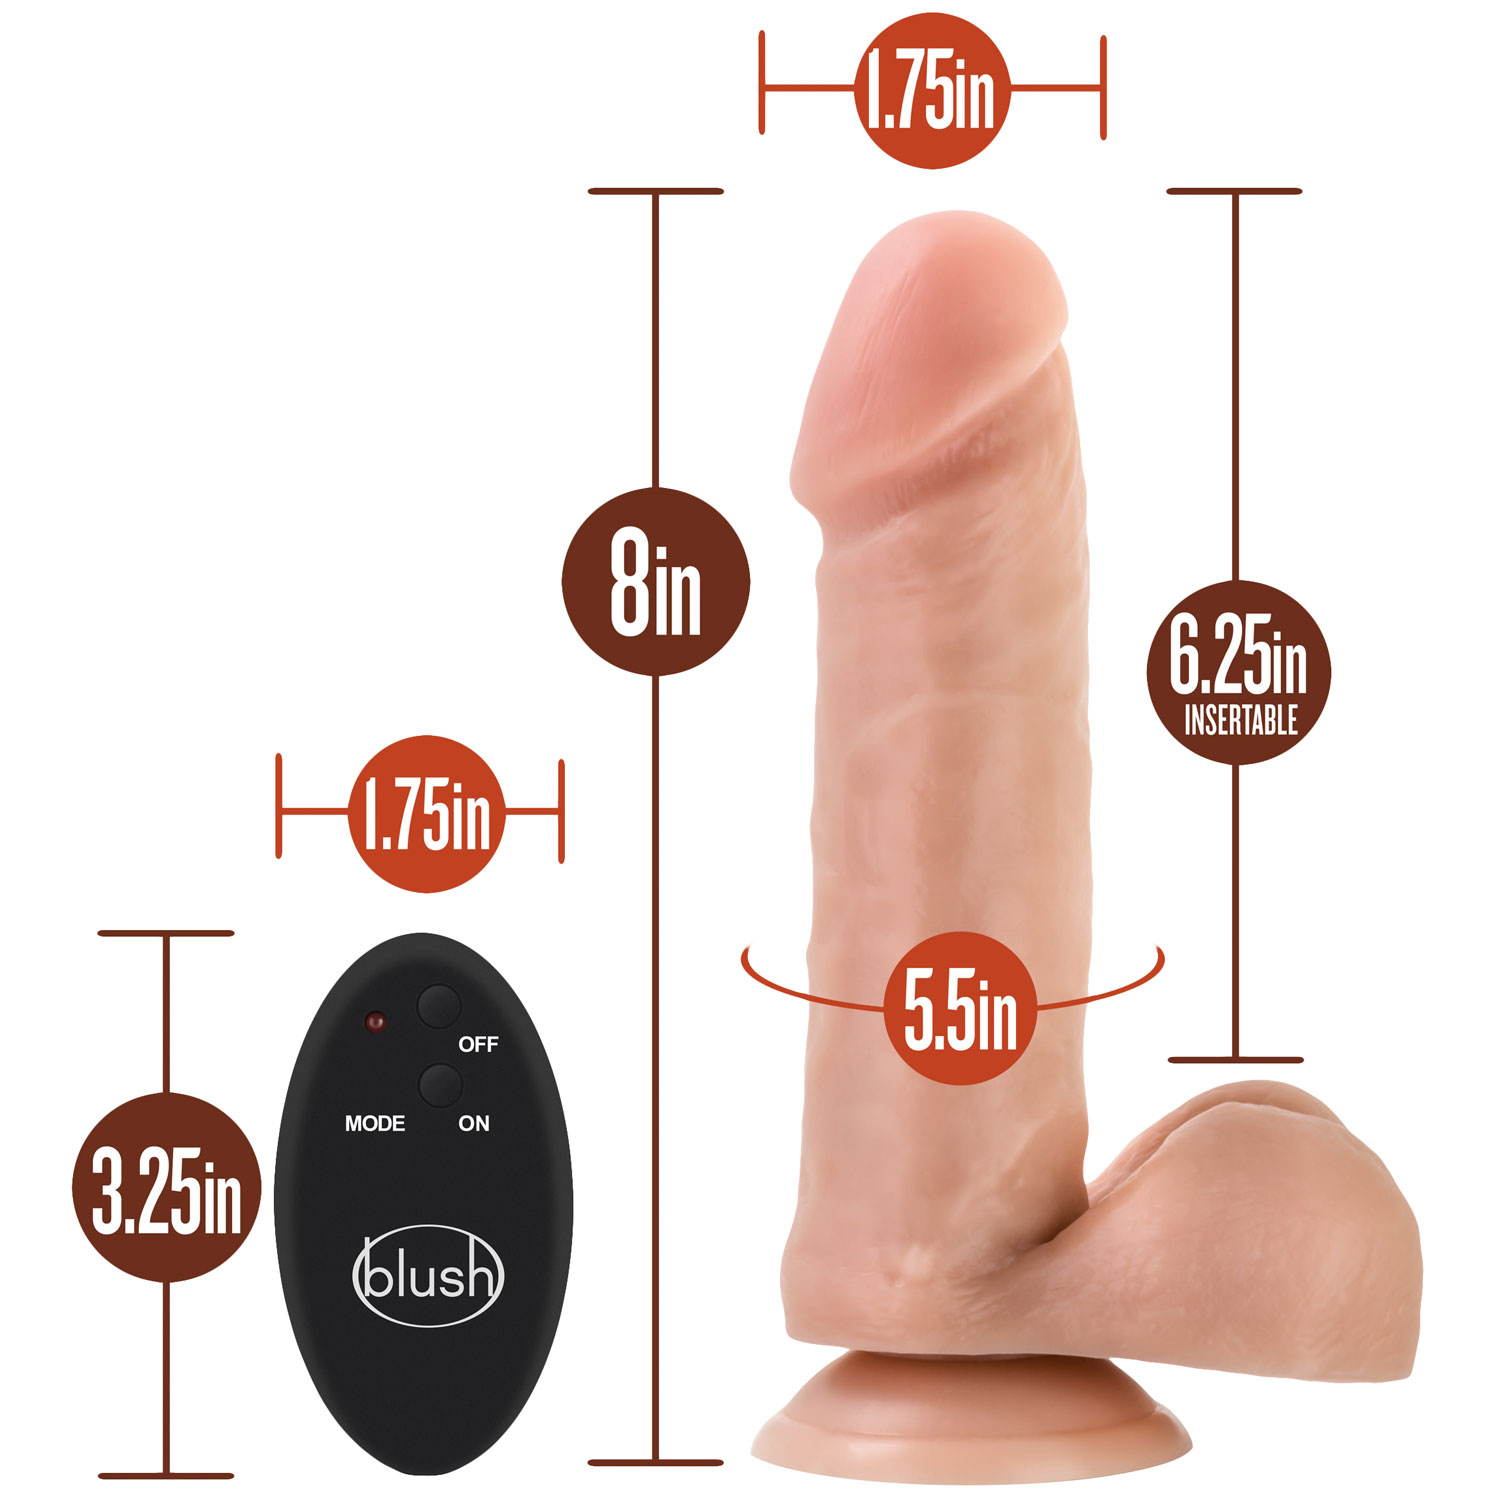 Silicone Willy's 8 Inch 10 Function Wireless Remote Silicone Suction Cup Dildo - Measurements